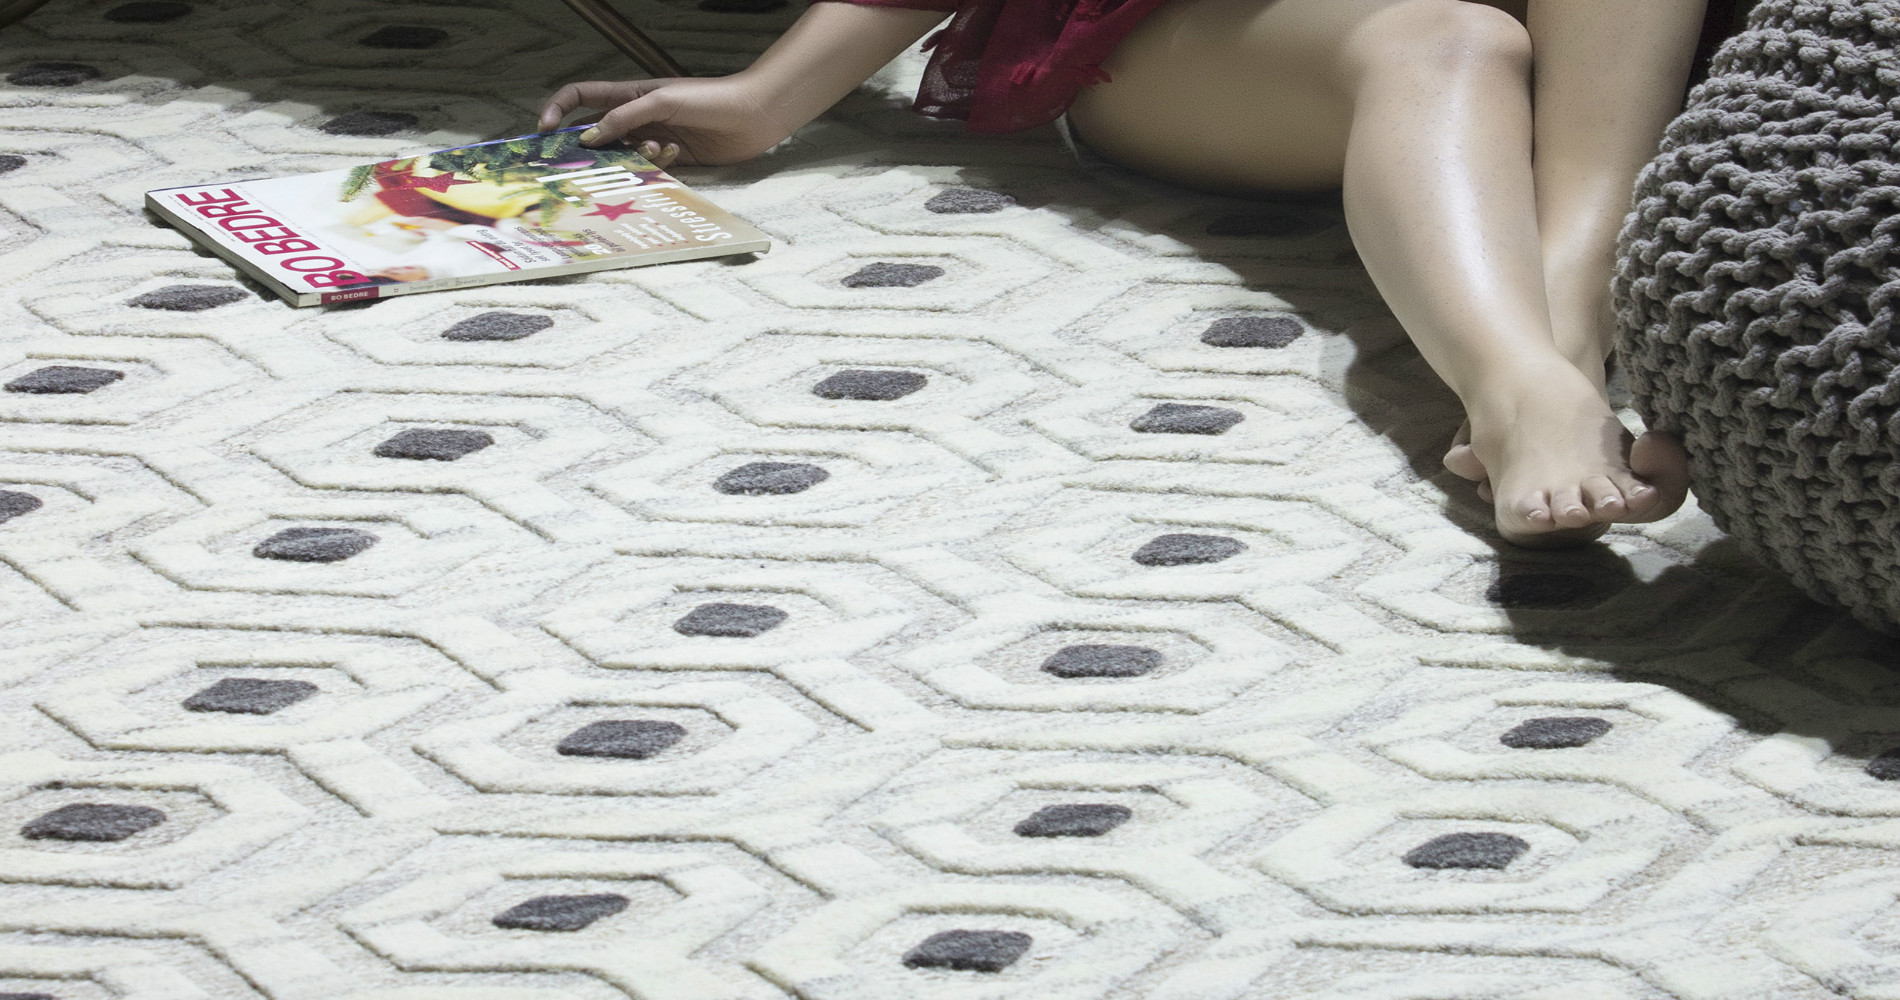 rugs/carpets exporters in India